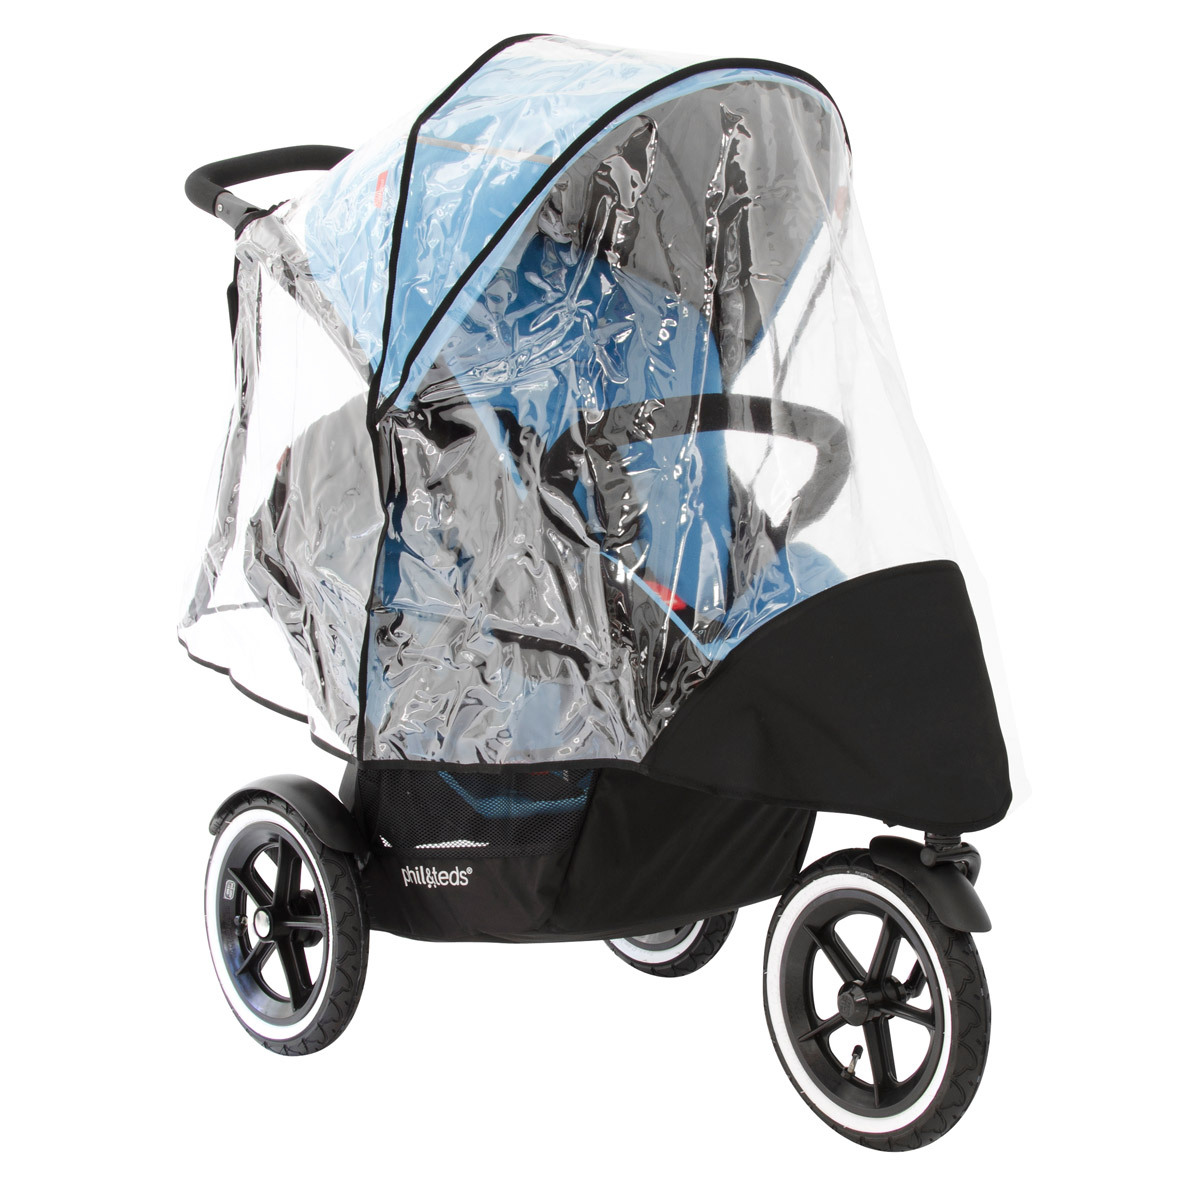 phil&teds sport buggy double storm cover フィルアンドテッズ レインカバー